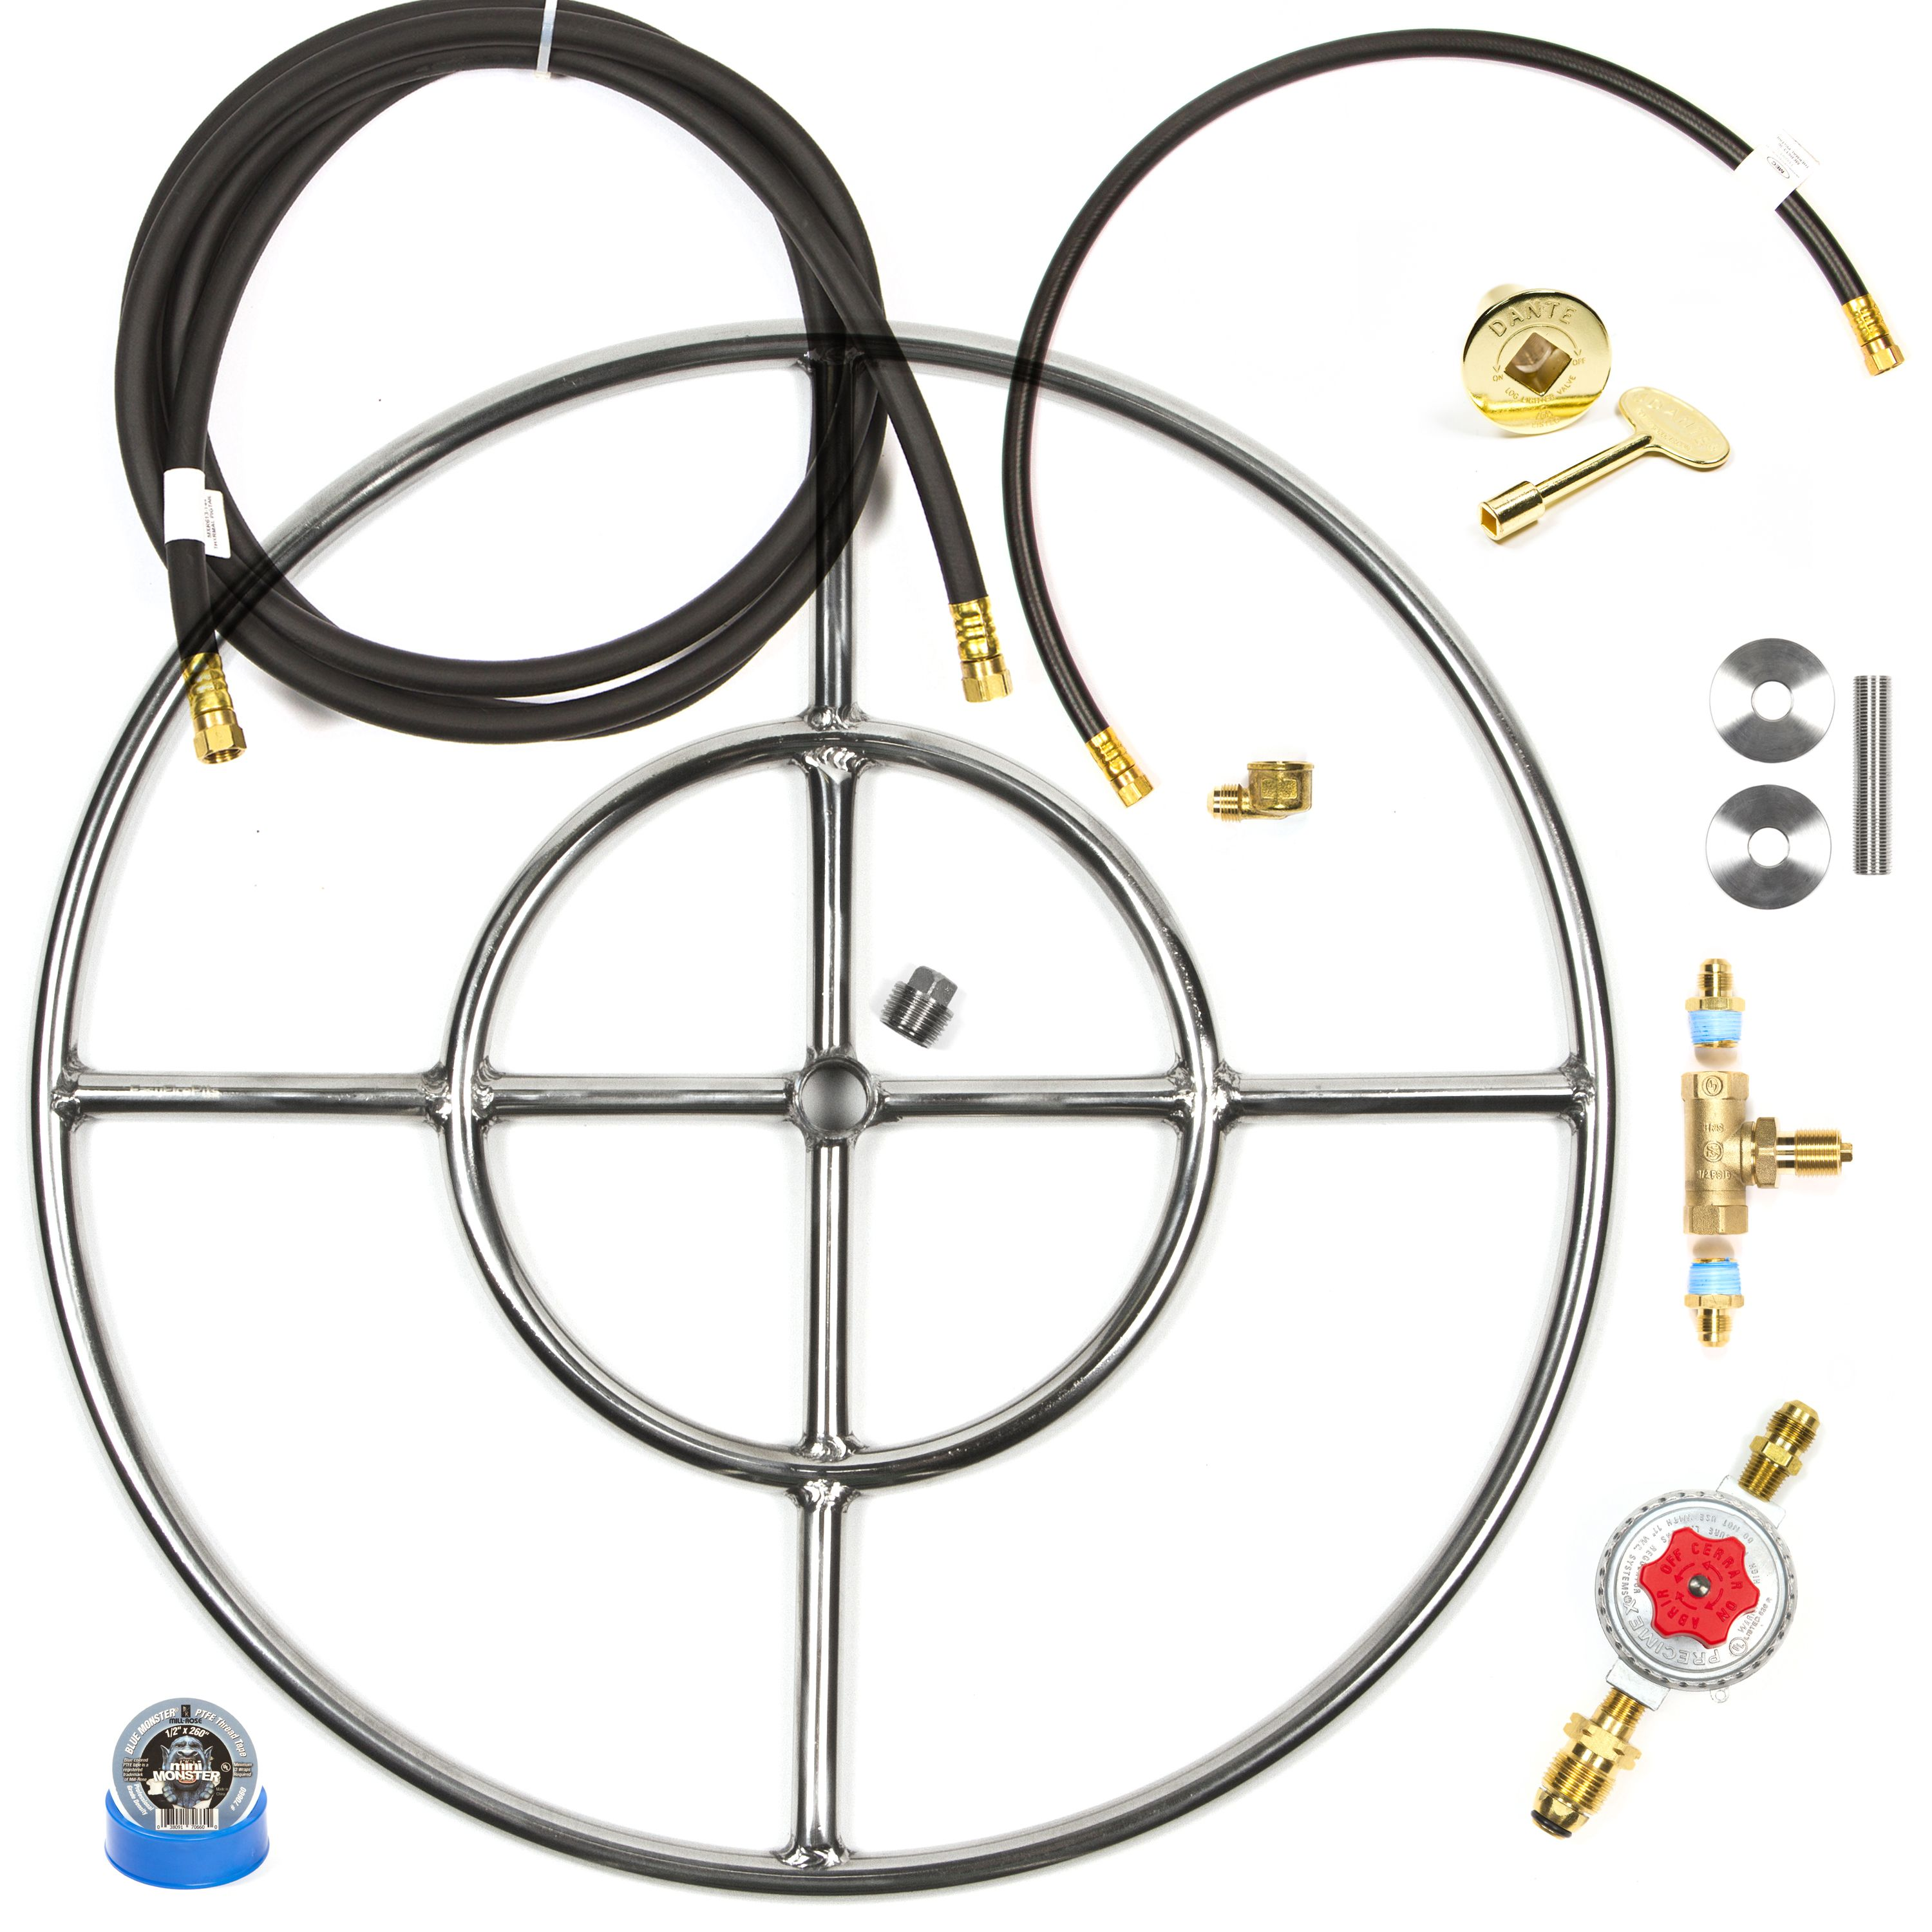 Fr24ck Complete Deluxe Do It Yourself Diy 24 Double Ring Fire Table Fie Pit Kit From Lp Tank Connection To Hoses Key Valve